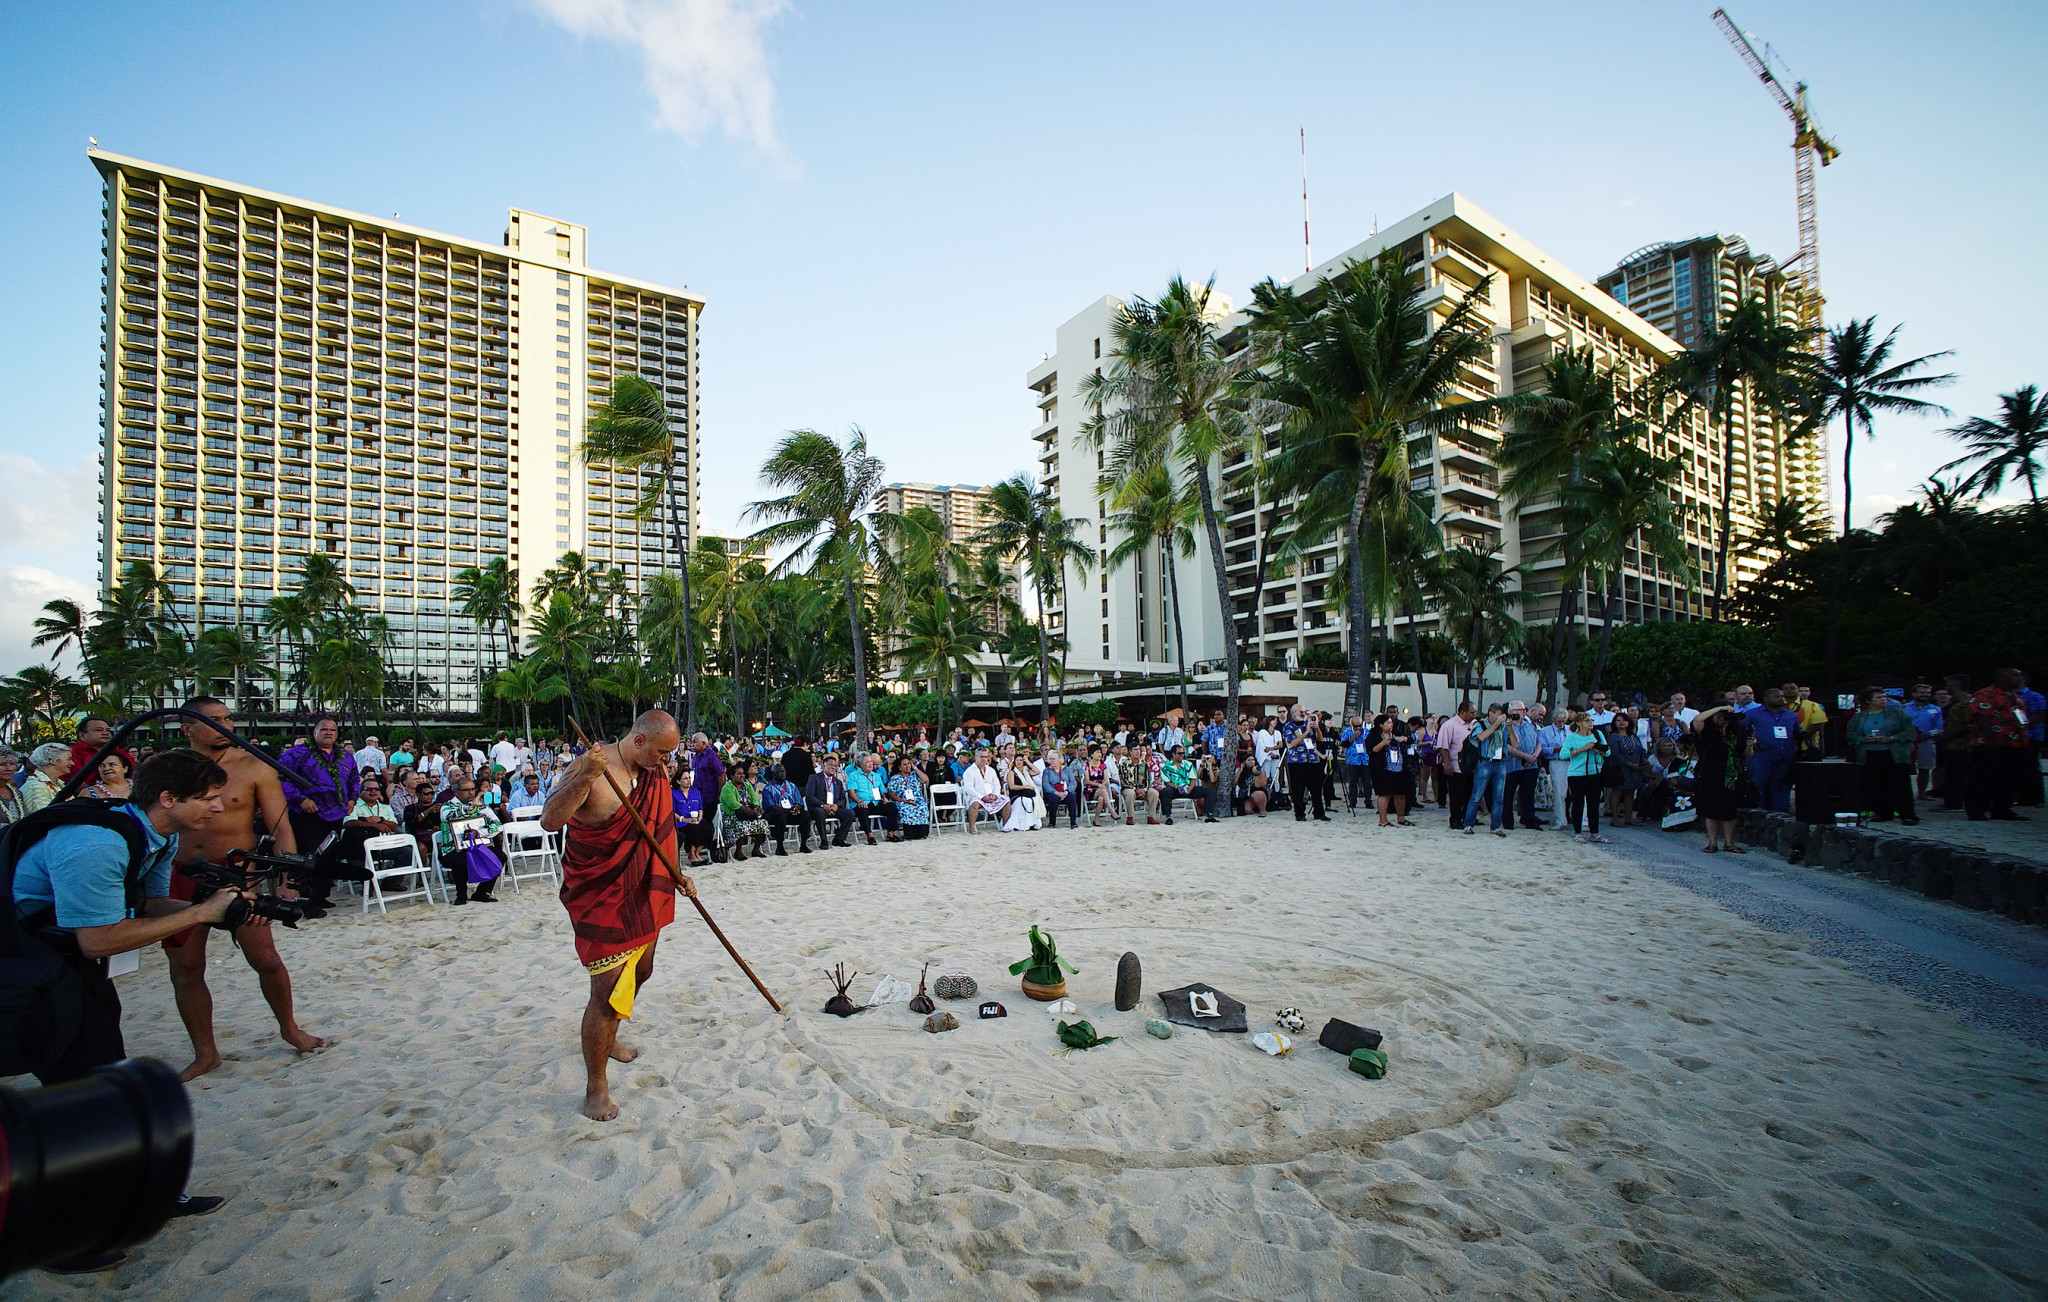 <p>Welcoming gifts from Pacific Island leaders filled a circle in the sand in a ceremony watched by people who then moved on to the Neal S. Blaisdell Center for a continuation of opening-day events.</p>